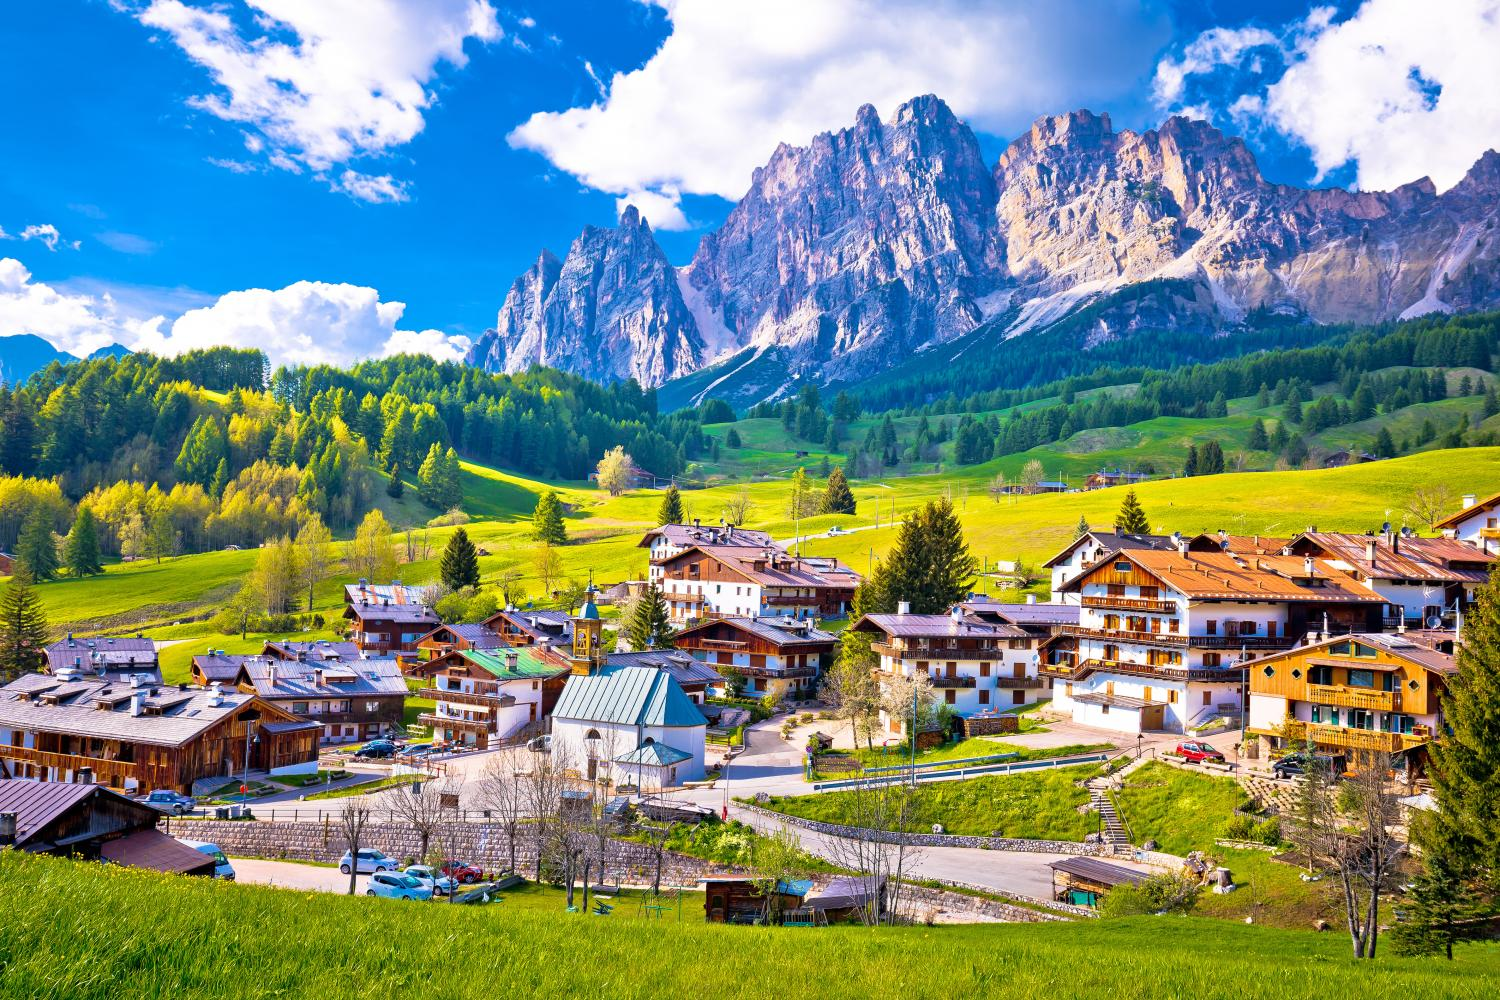 Venice Day Tours - Dolomites & Venice in 1 day Combo tour